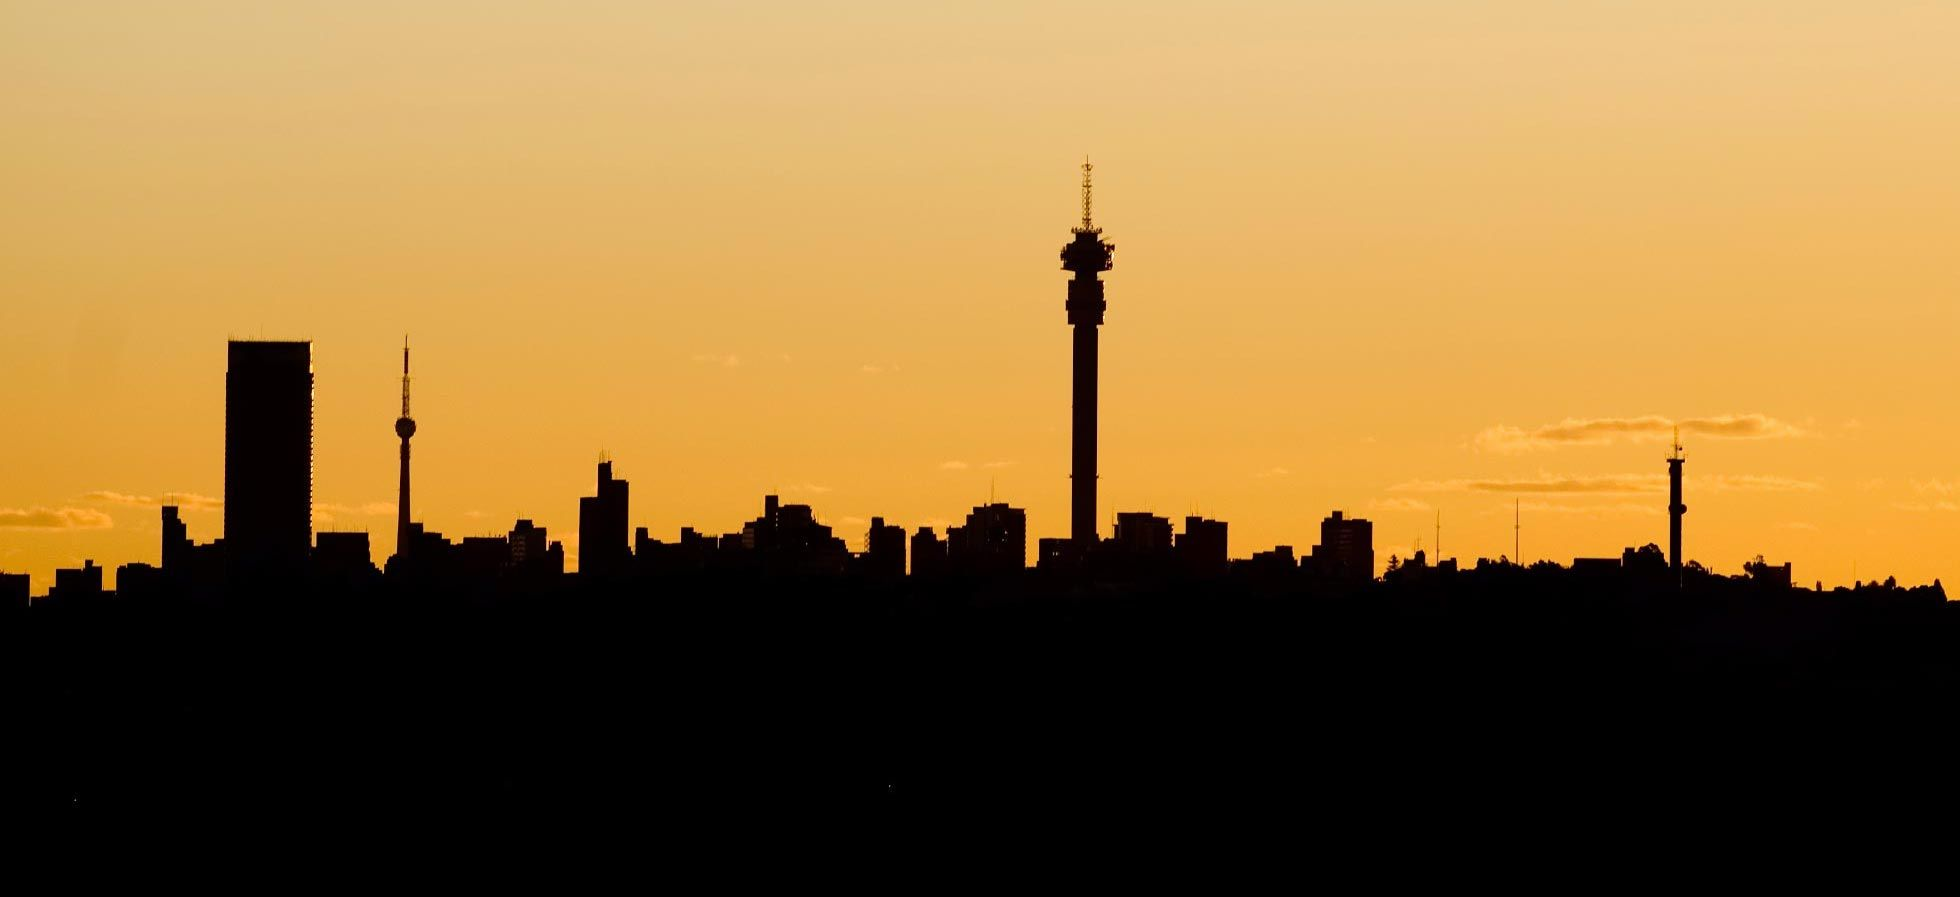 What To See In Johannesburg The Winston Hotel Johannesburg Skyline Johannesburg City Skyline Silhouette